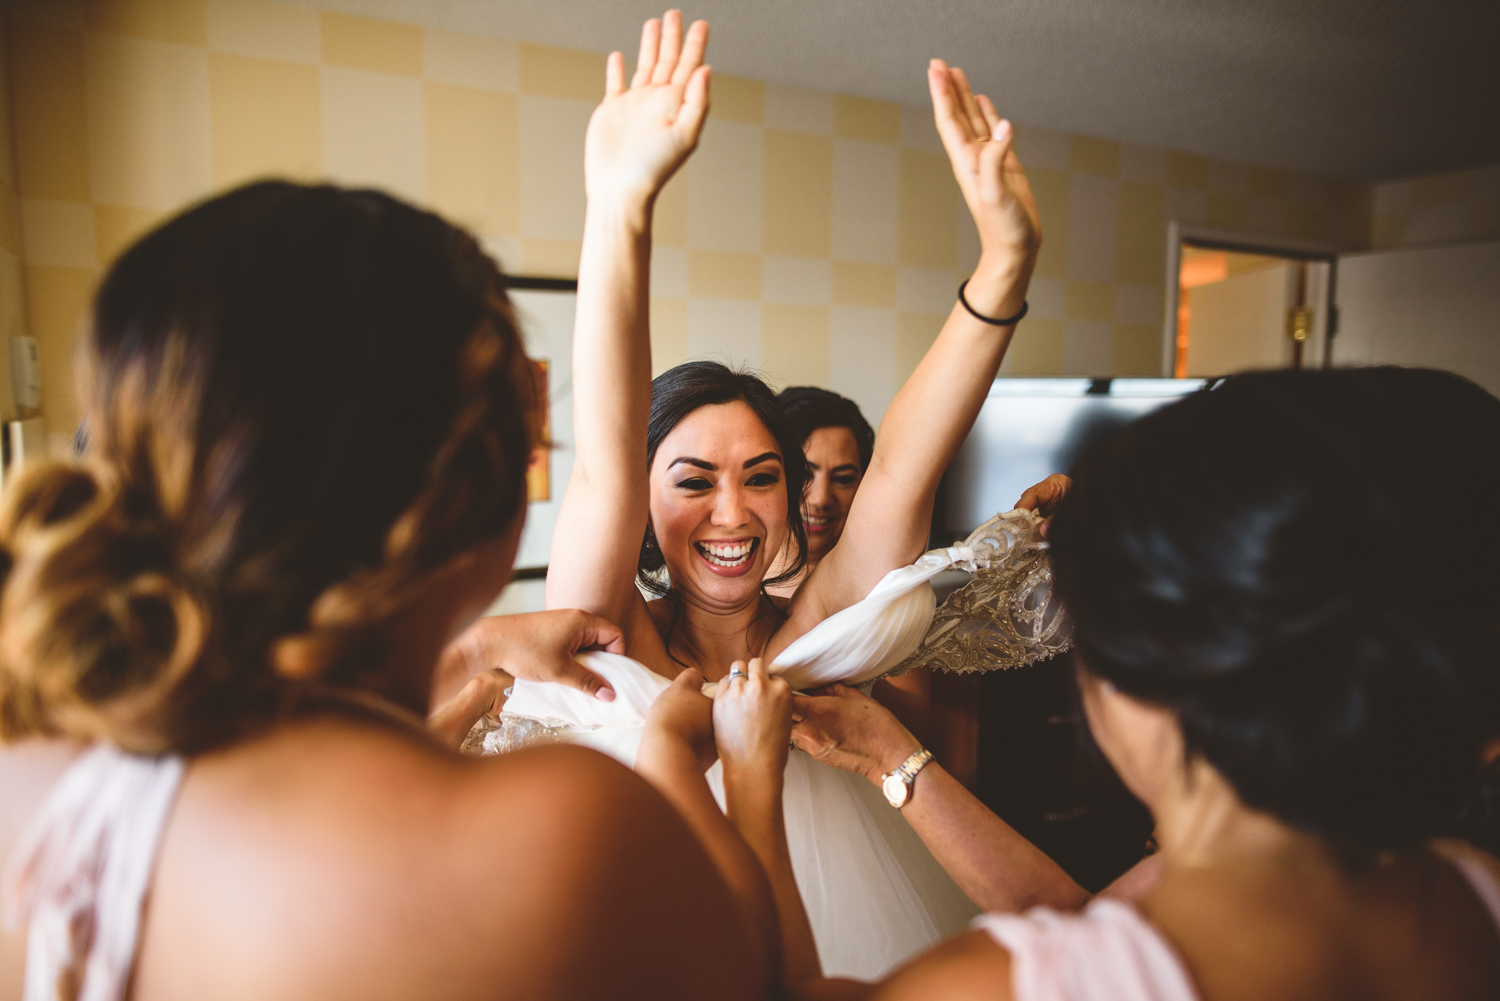 005 bride laughing as bridesmaids help her into wedding dress.jpg